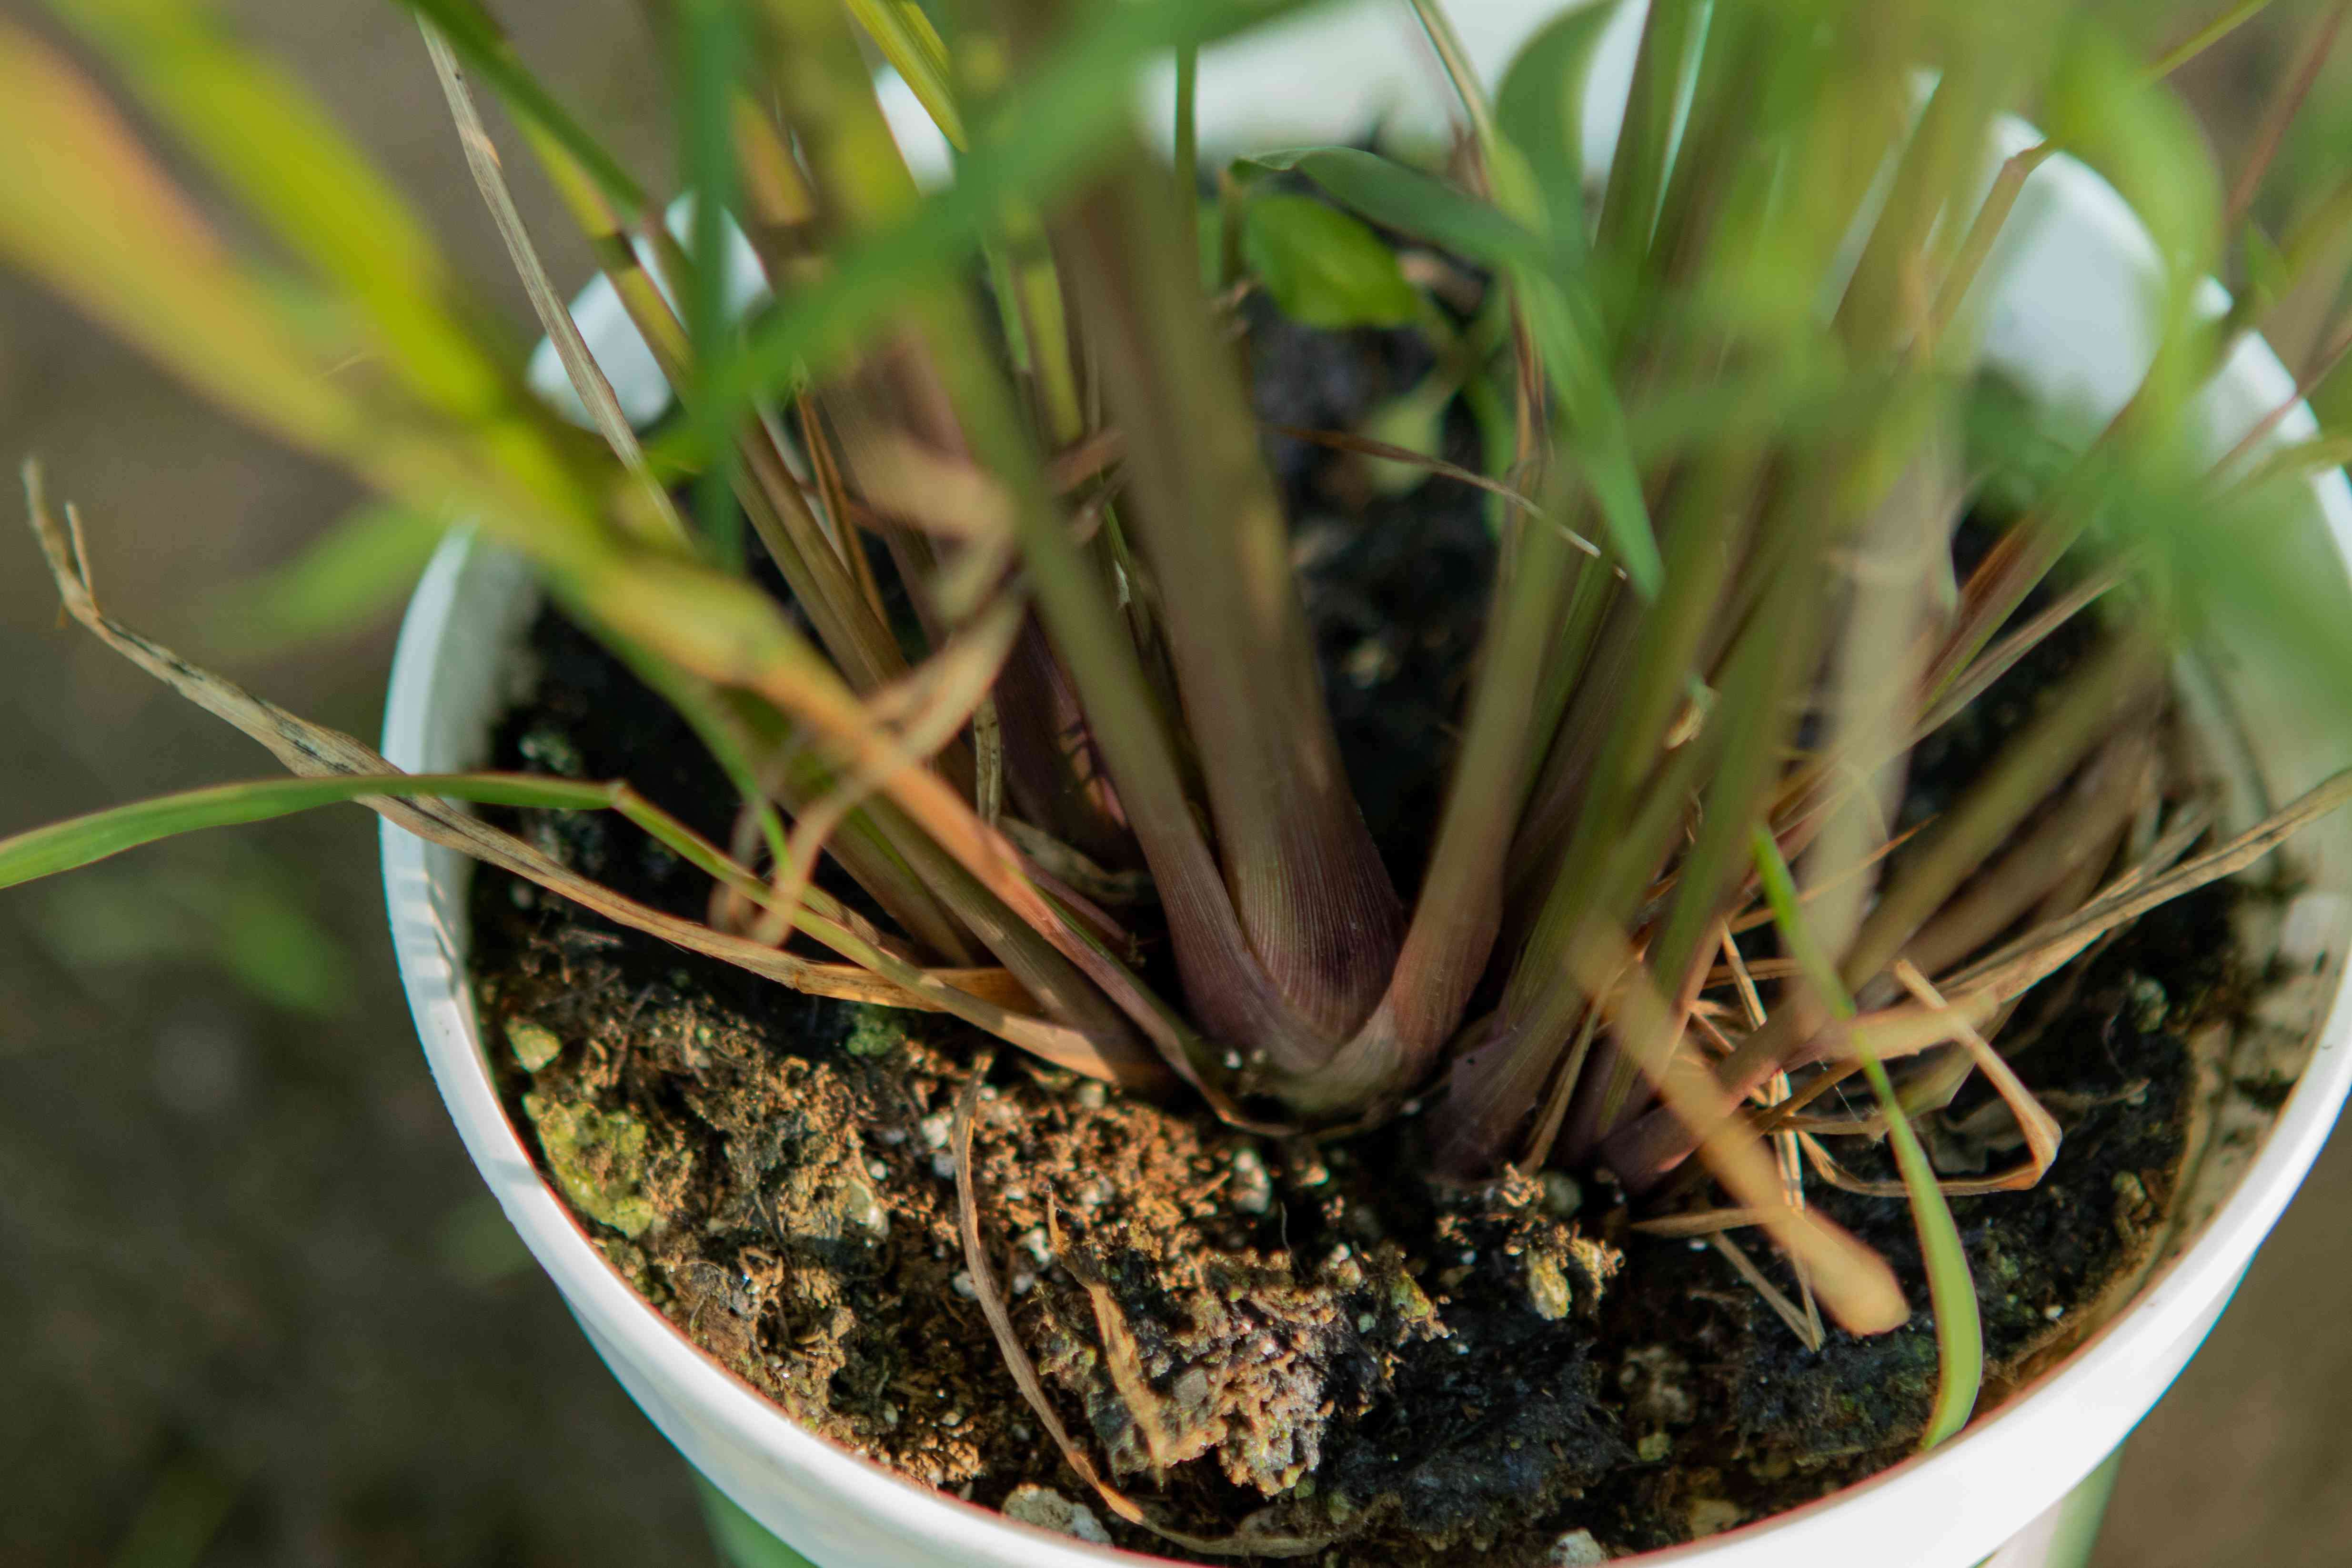 close view of lemongrass plant in soil in white container